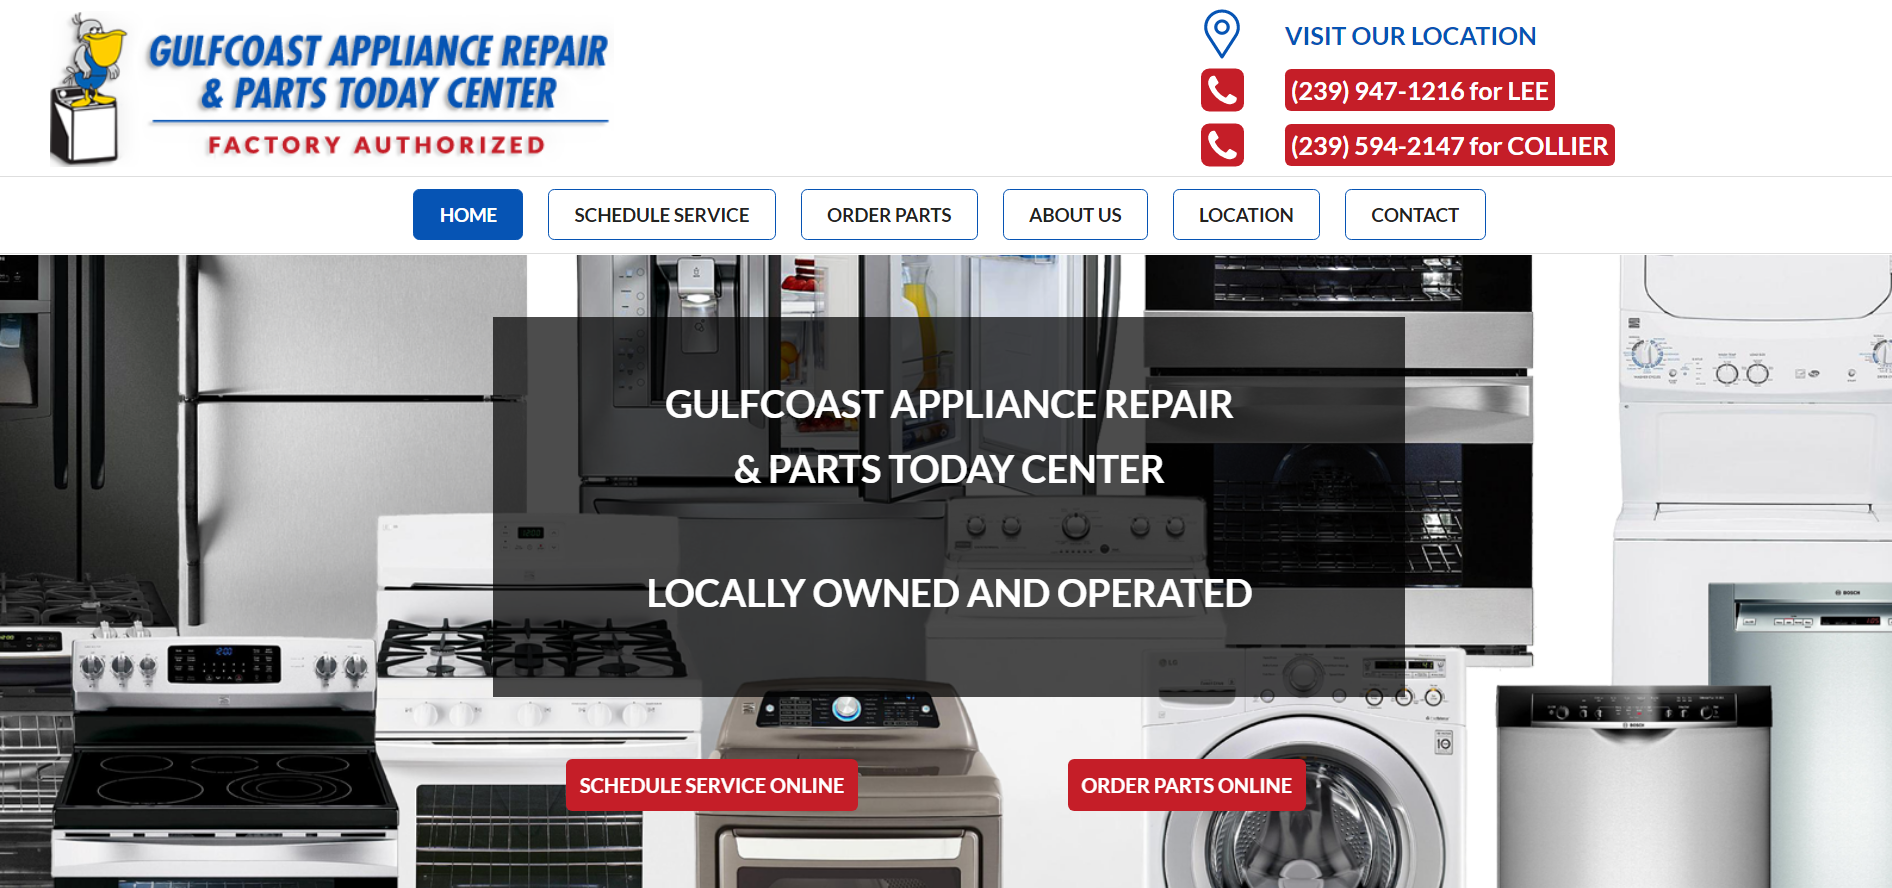 GULFCOAST APPLIANCE REPAIR